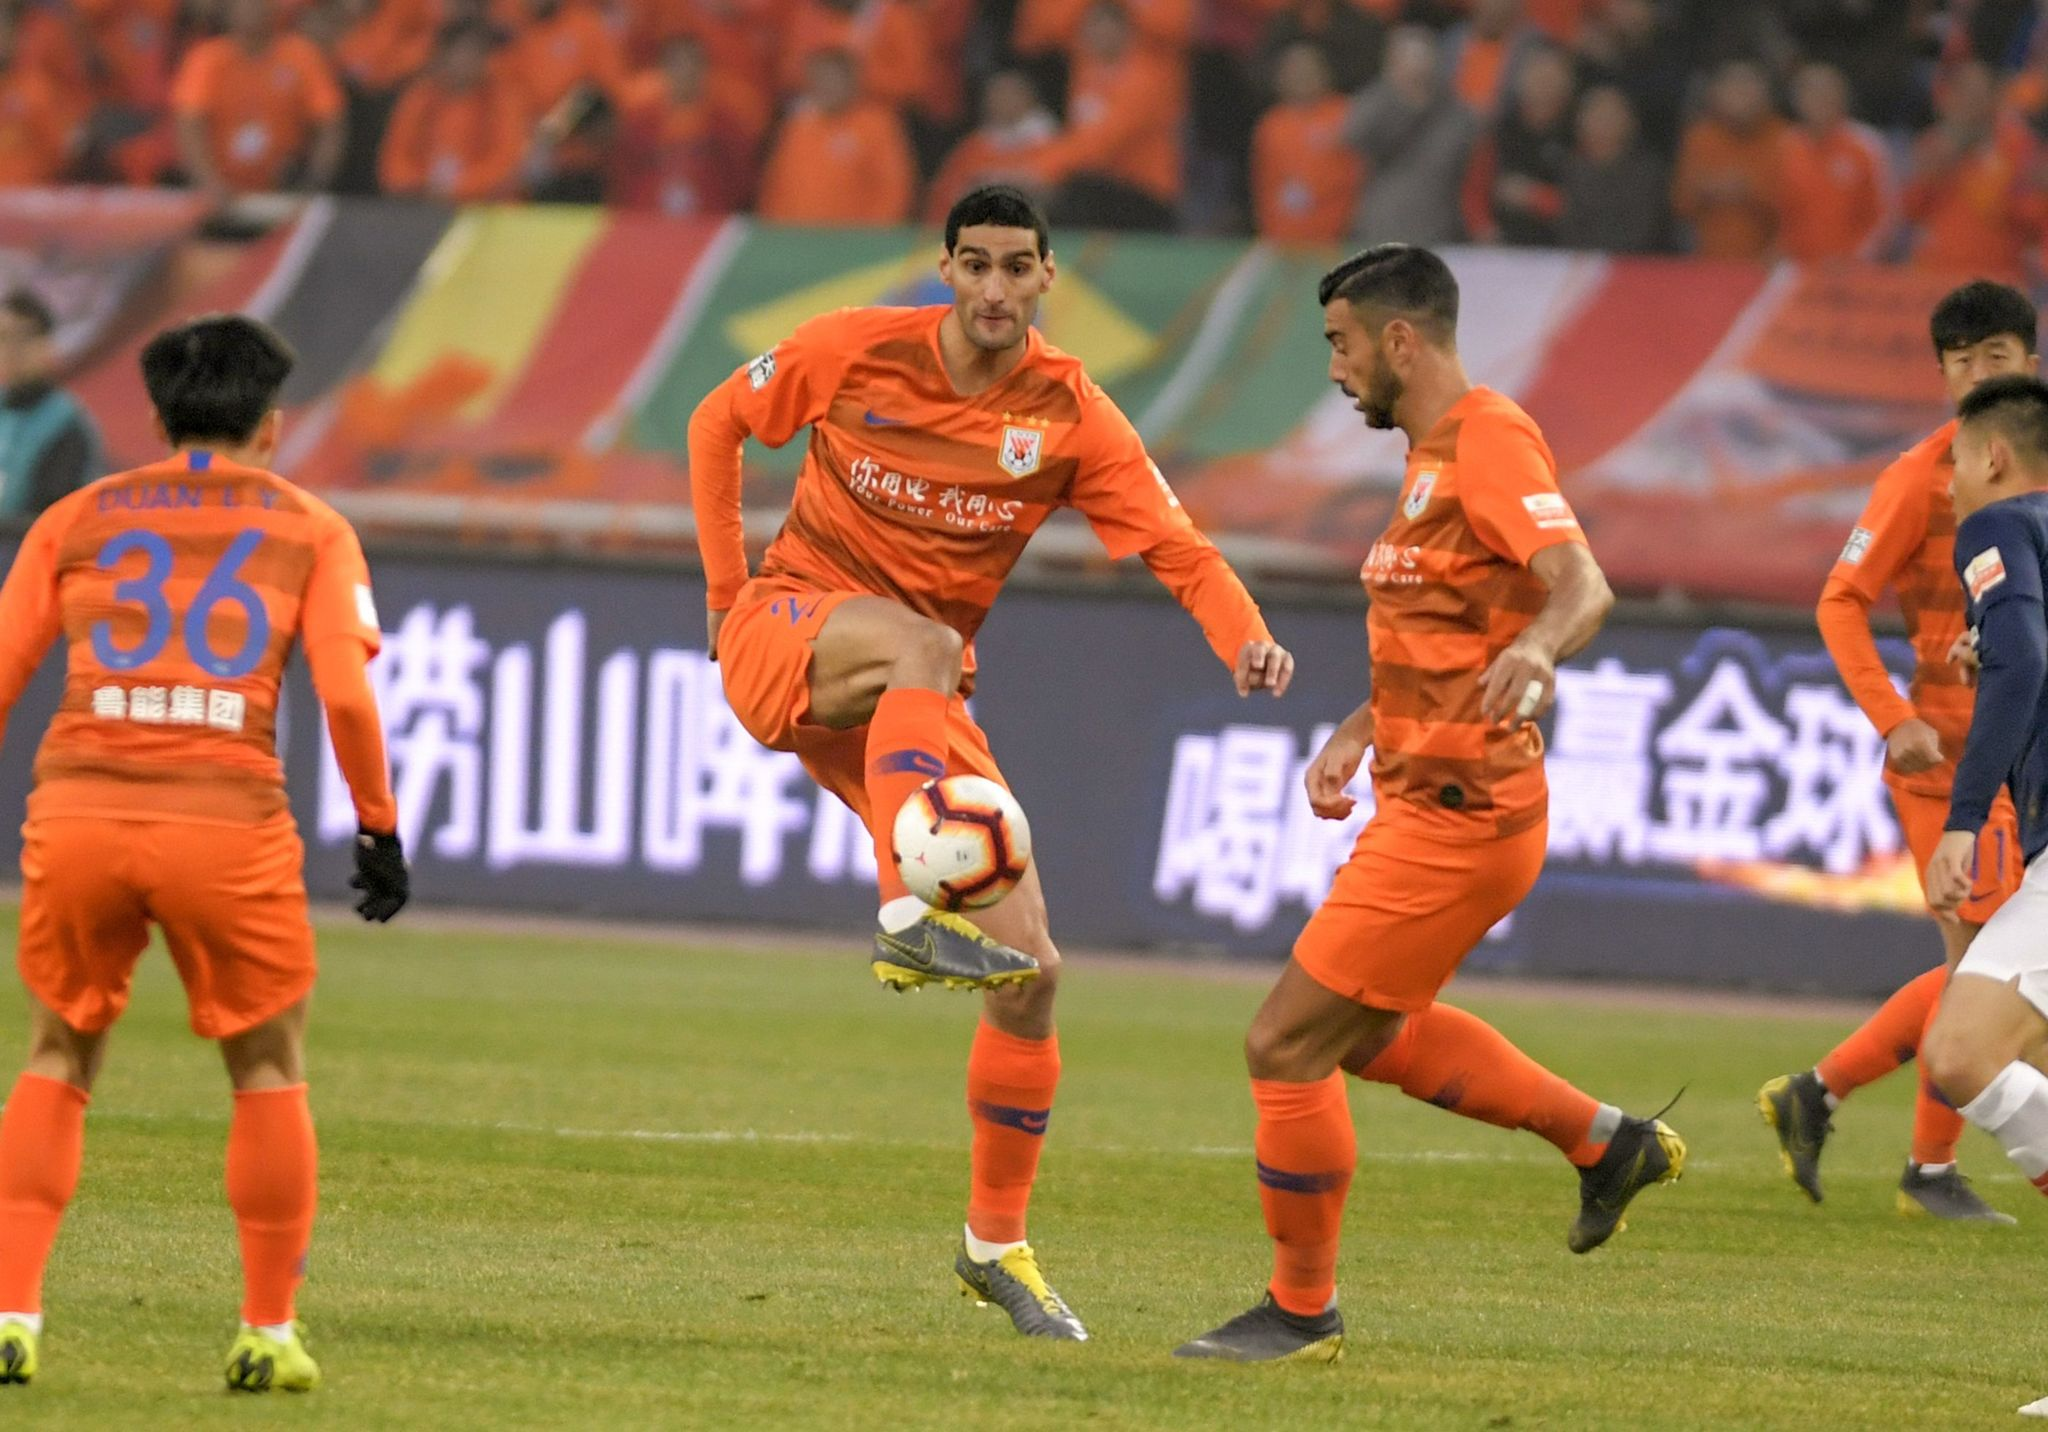 Marouane <HIT>Fellaini</HIT> (C) of Shandong Luneng kicks the ball next to teammate Graziano Pelle (R) during the Chinese Super League (CSL) football match between Shandong Luneng and Beijing Renhe in Jinan in Chinas eastern Shandong province on March 1, 2019. - Marouane <HIT>Fellaini</HIT> needed just 50 minutes to make his mark in Chinese football, scoring the winner on his debut for Shandong Luneng on March 1 following his move from Manchester United. (Photo by STR / AFP) / China OUT